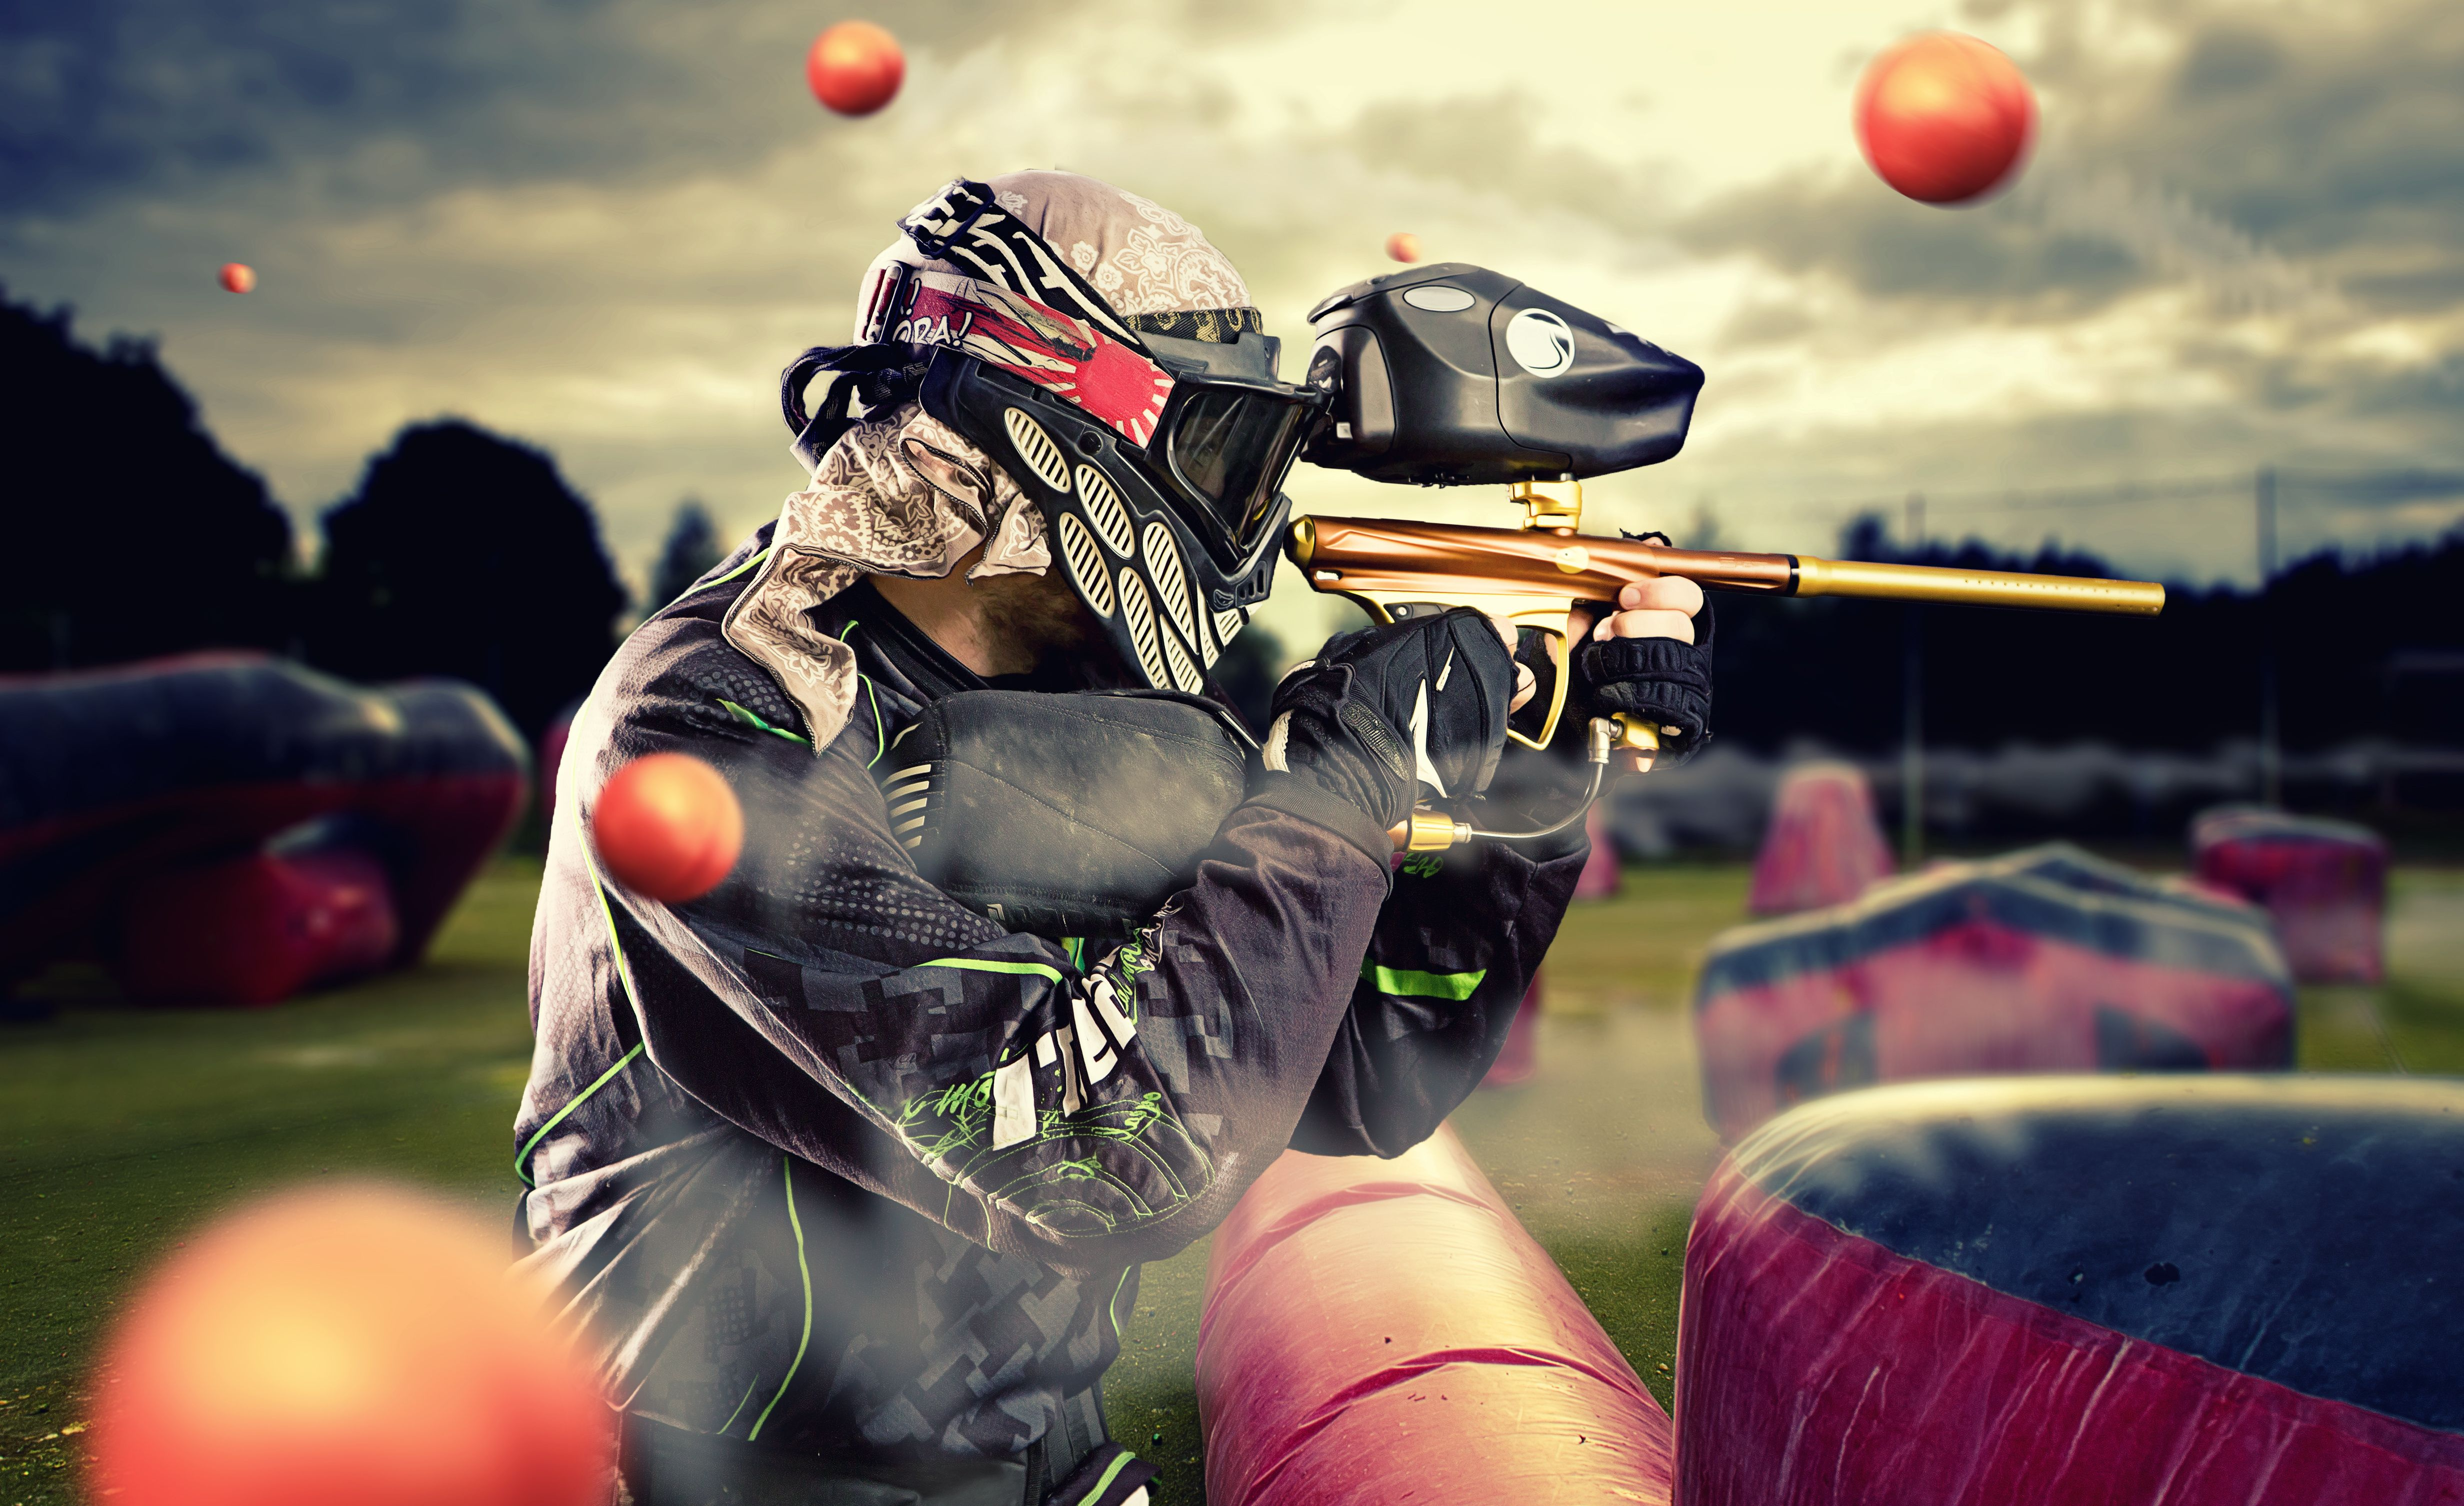 Paintball Wallpapers Hd 1920x1080 Wallpaper Cave